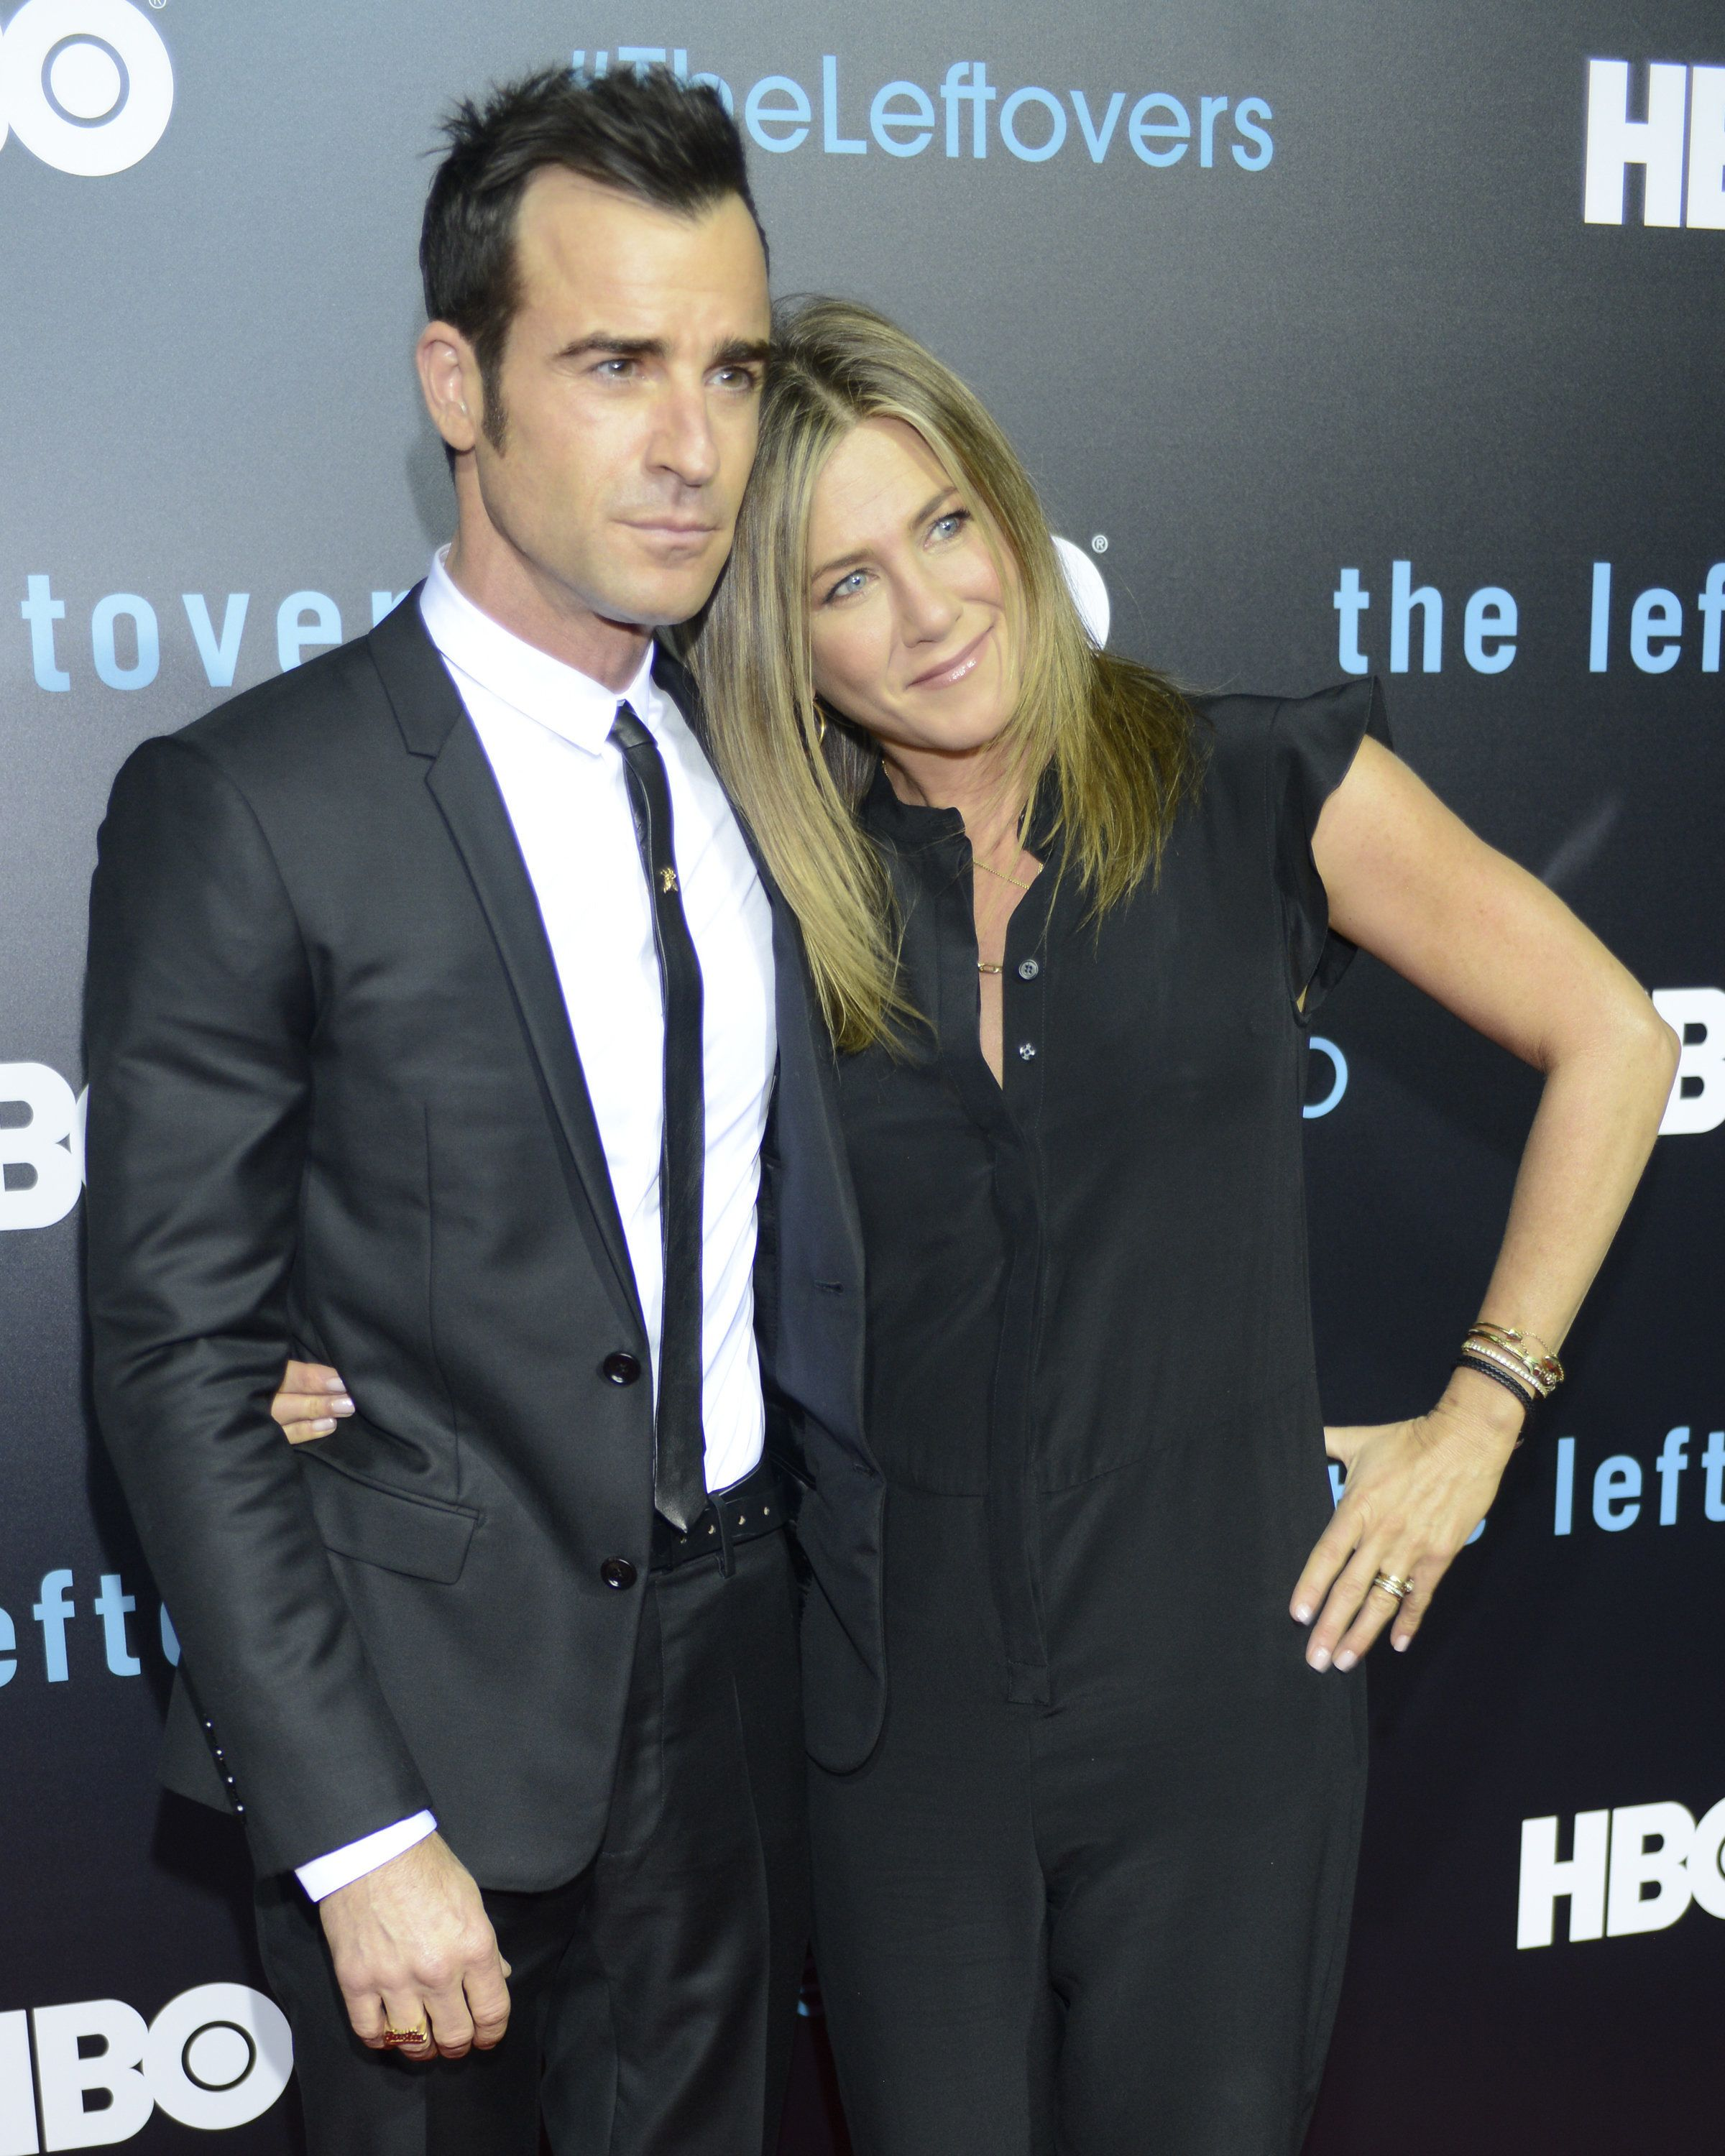 AUSTIN, TX - OCTOBER 03:  Justin Theroux (L) and Jennifer Aniston attend HBO's 'The Leftovers' Season 2 Premiere during The ATX Television Festival at the Paramount Theatre on October 3, 2015 in Austin, Texas.  (Photo by Tim Mosenfelder/Getty Images)